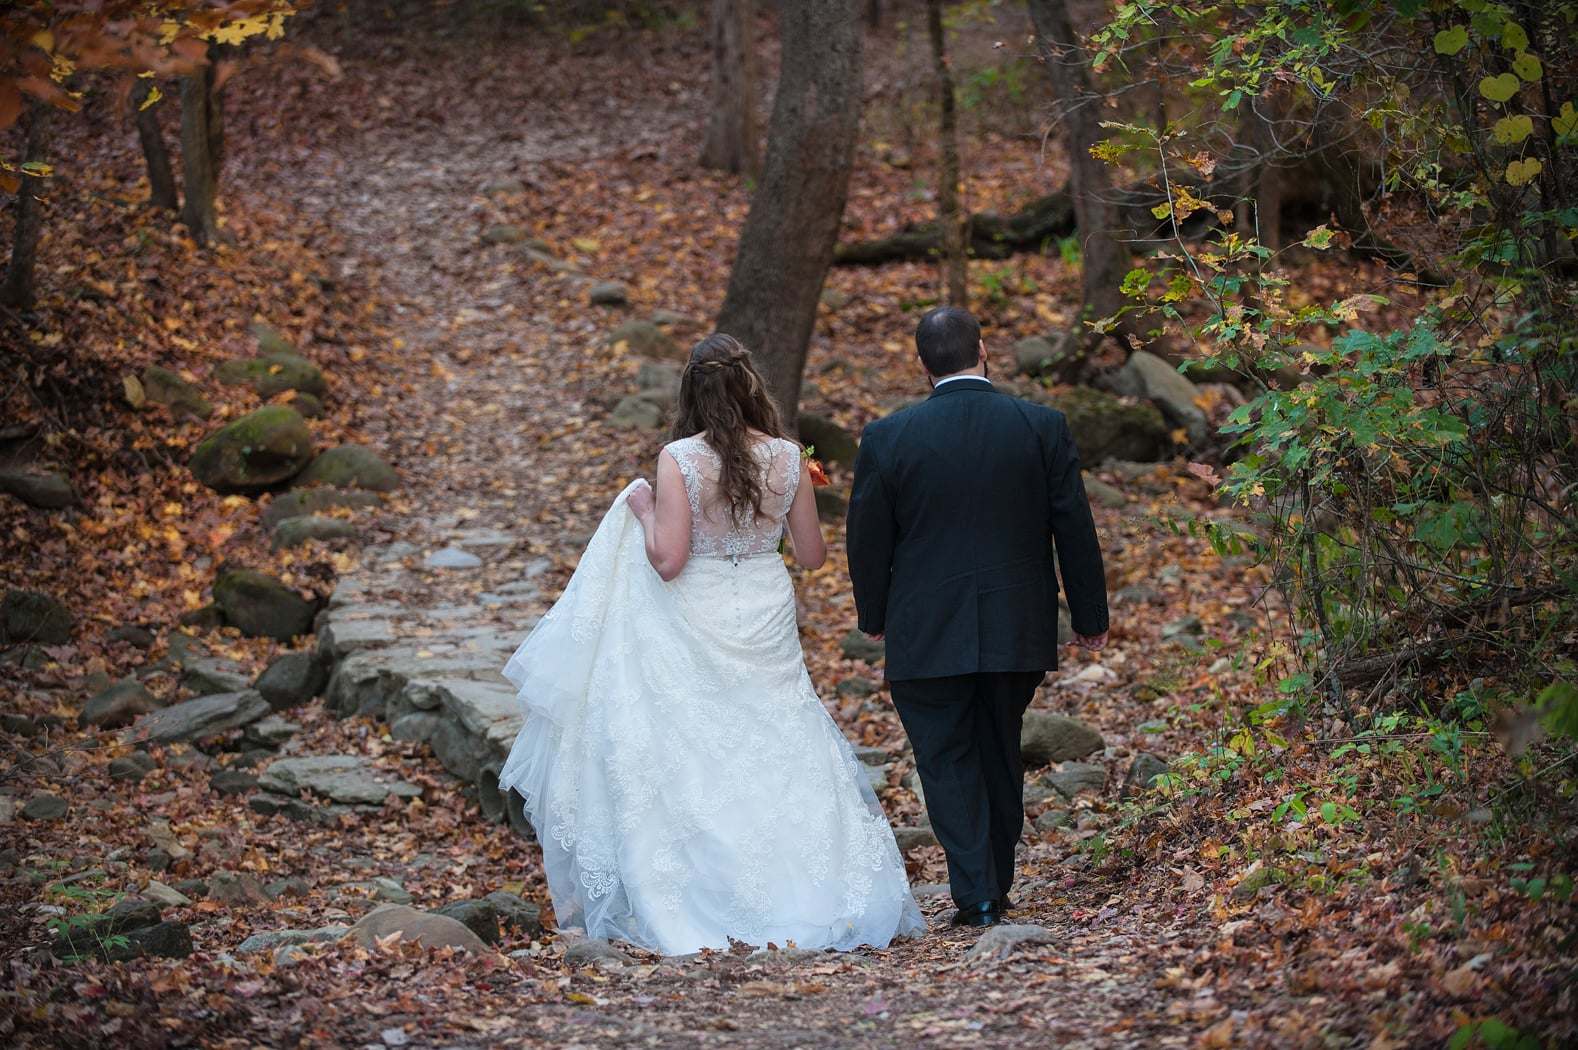 Bride and groom walking in Lost Valley